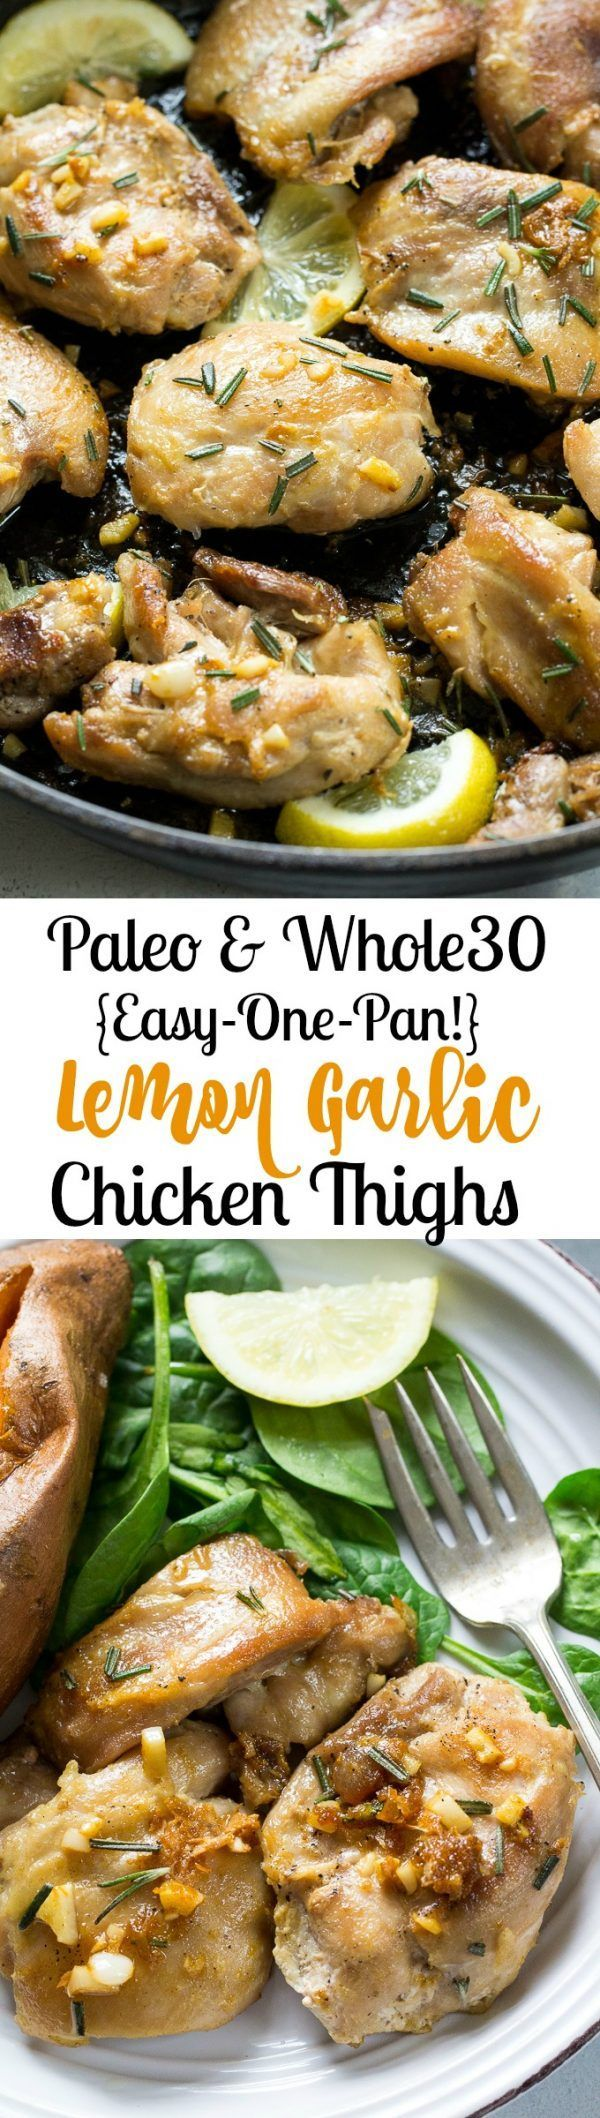 Lemon Garlic Chicken Thighs (Paleo & Whole30) Easy Paleo and Whole30 Lemon Garlic Chicken Thighs made all in one pan that are super flavorful, filling and even kid friendly! Great Paleo and Whole30 family weeknight dinnerEasy Paleo and Whole30 Lemon Garlic Chicken Thighs made all in one pan that are super flavorful, filling and even kid friendly! Great Paleo and W...